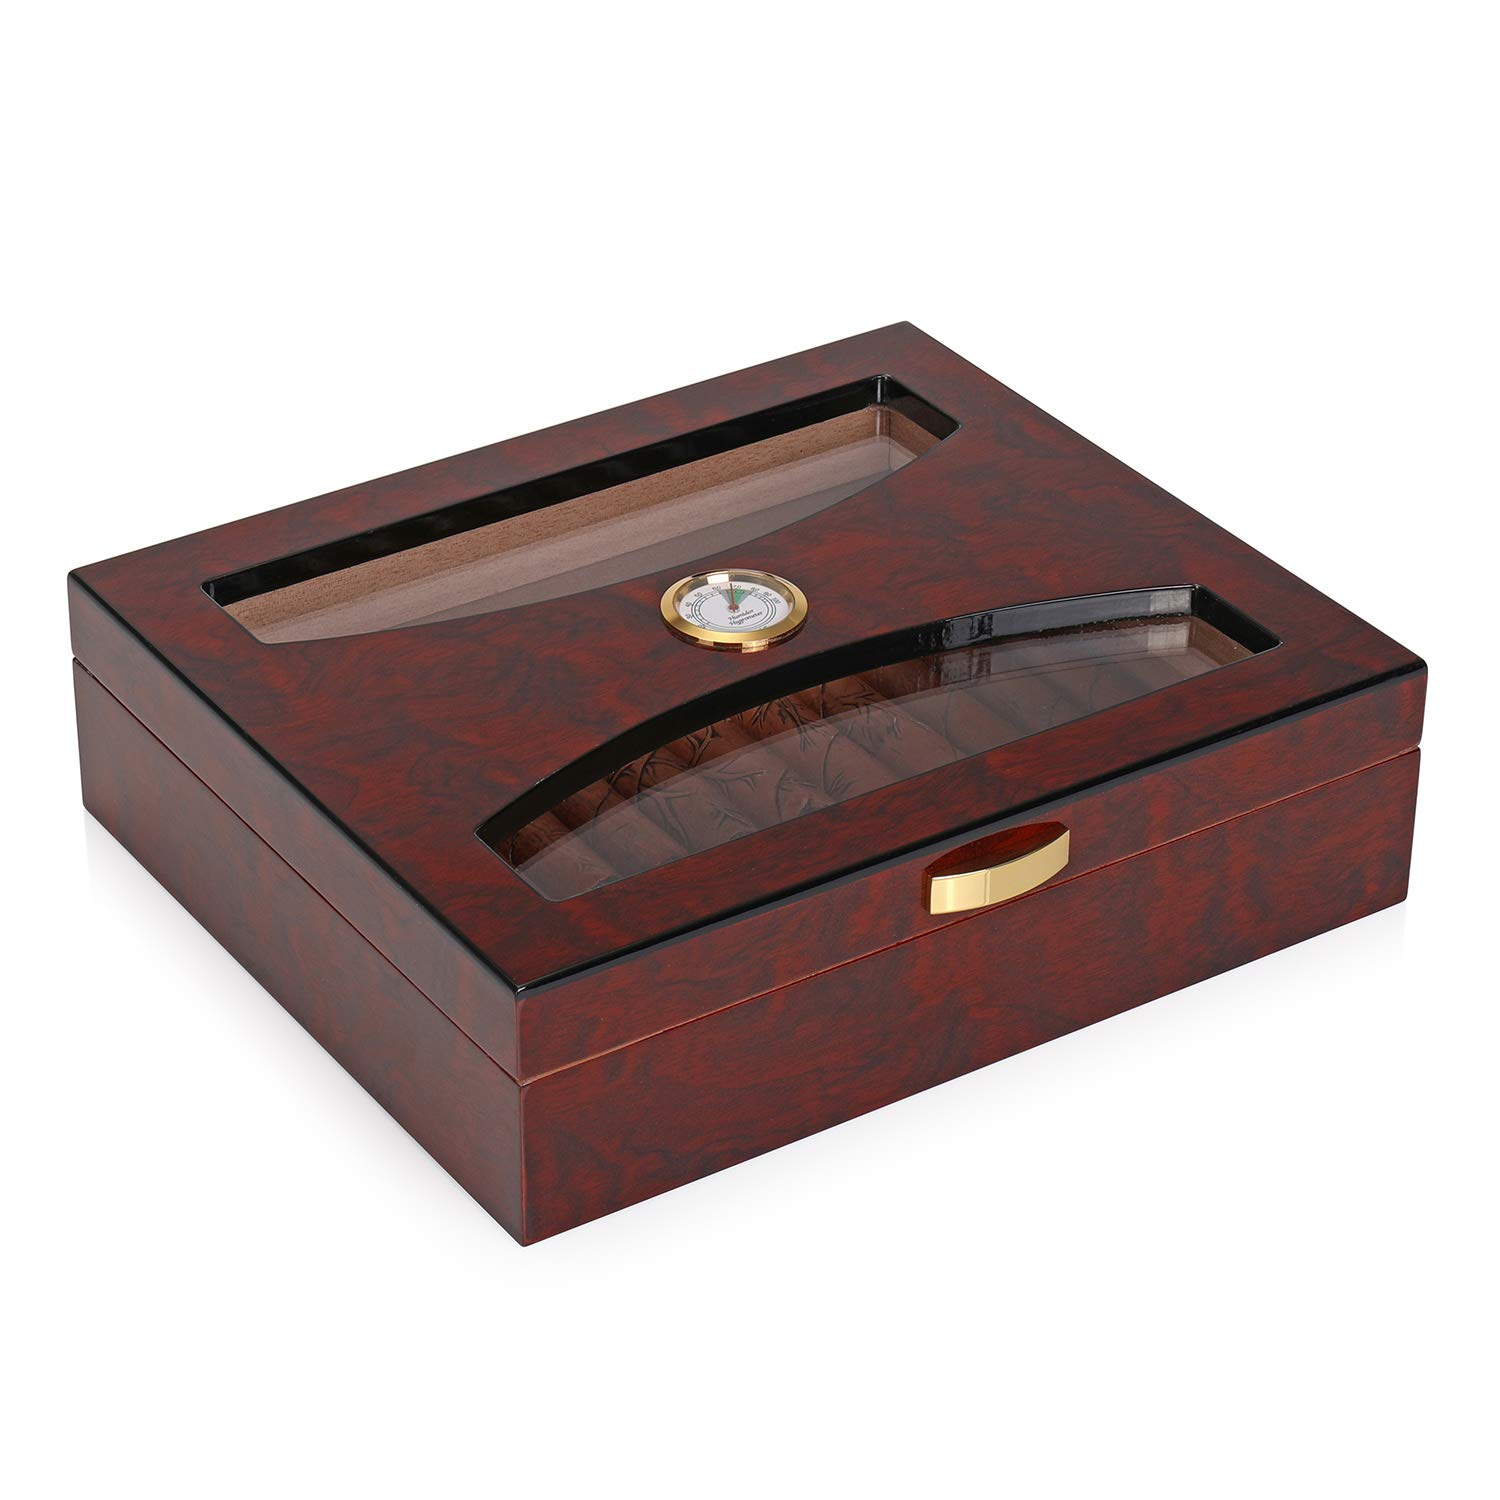 Woodronic Glasstop Cigar Humidor, Mahogany with Spanish Cedar Wood Lined for 25 Cigars, Perfect Desktop Display Cigar Box Set with Hygrometer and Humidifier, A-5036